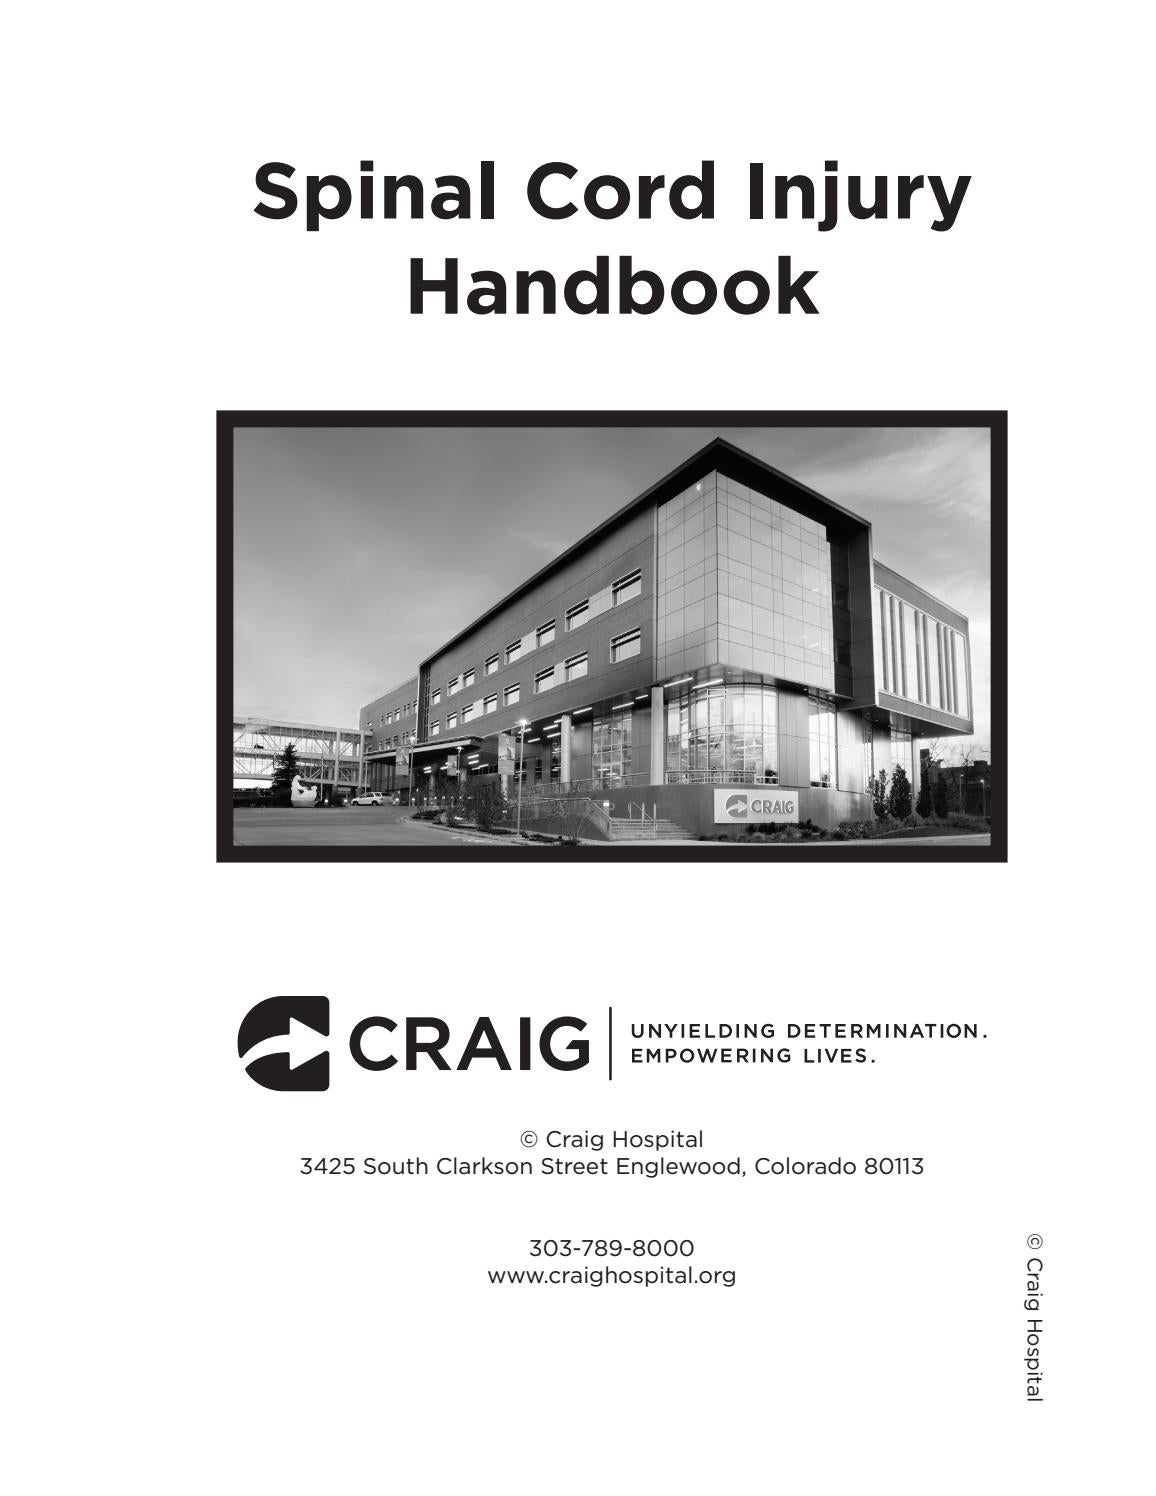 Spinal Cord Injury Handbook By Craig Hospital Issuu Garbage Disposal Dishwasher Wiring On Garage For Welder